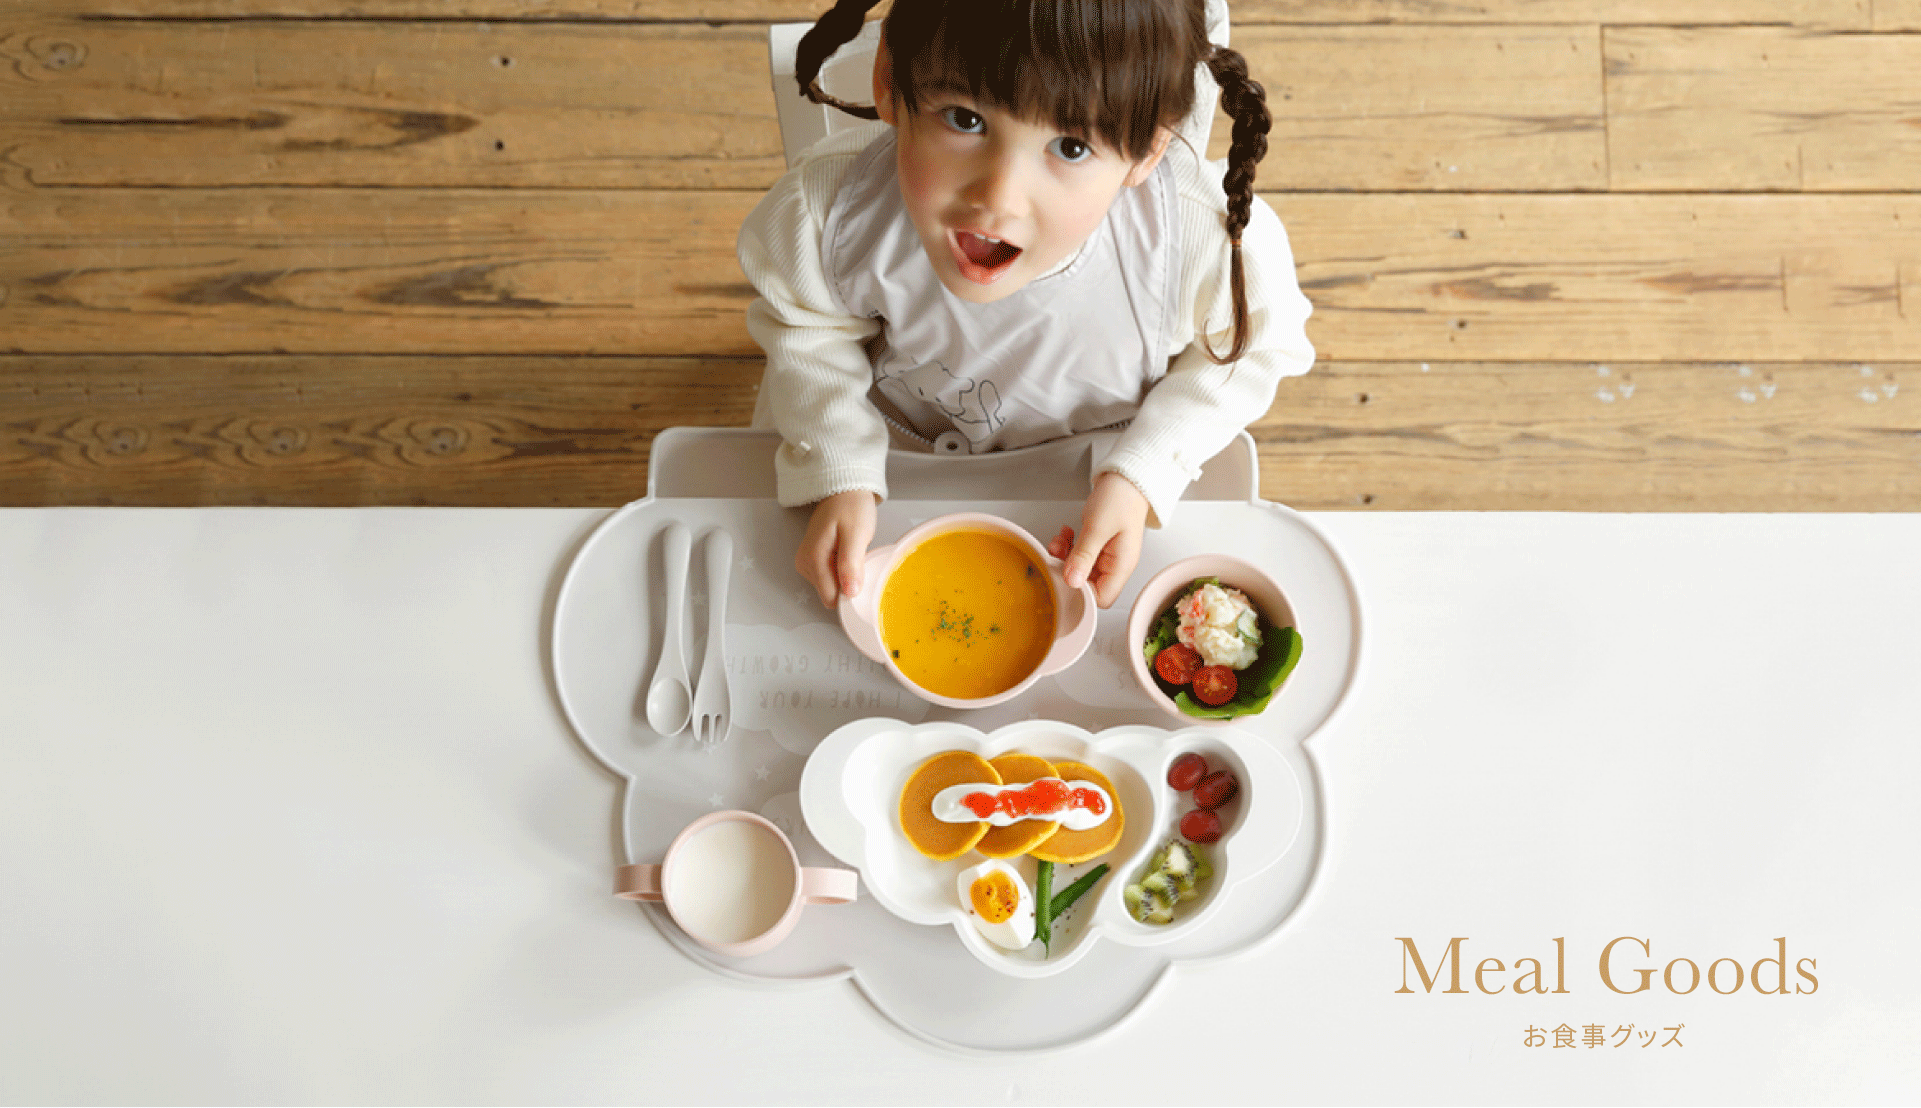 Meal Goods / お食事グッズ